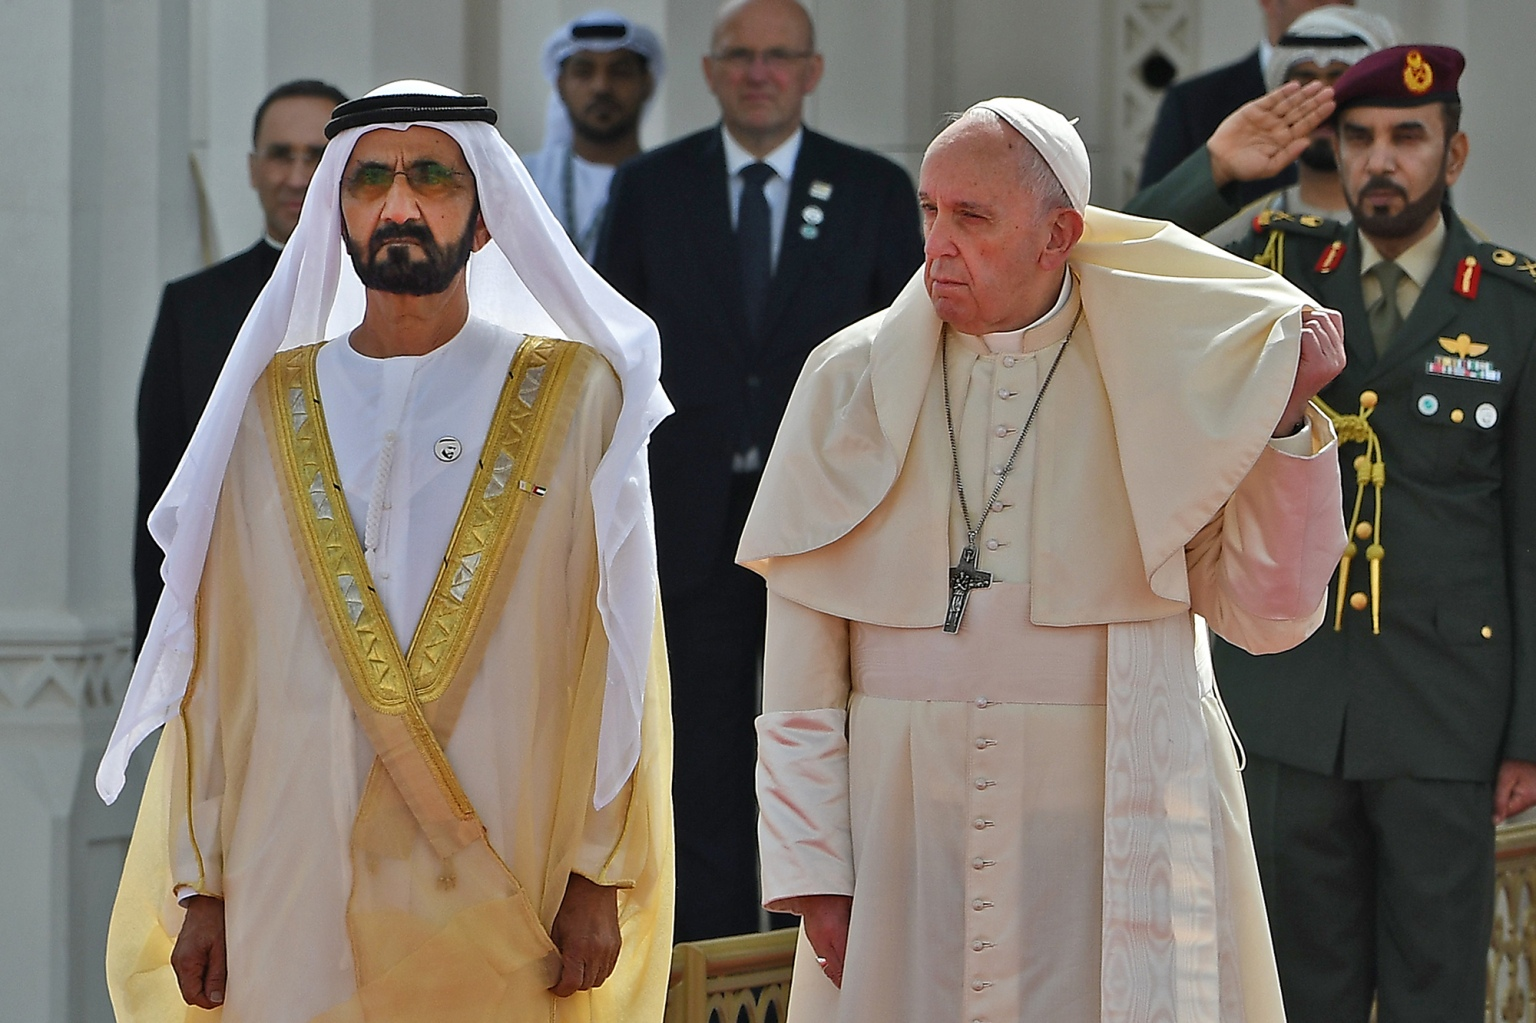 Pope Francis is welcomed by Dubai ruler Sheikh Mohammed bin Rashid Al-Maktoum and  Abu Dhabi's Crown Prince Mohammed bin Zayed al-Nahyan upon his arrival to the presidential palace in Abu Dhabi on Feb. 4. It was the first ever papal visit to the Arabian Peninsula, birthplace of Islam, where he will meet leading Muslim clerics and hold an open-air Mass for some 135,000 Catholics. (Vincenzo Pinto/AFP/Getty Images)